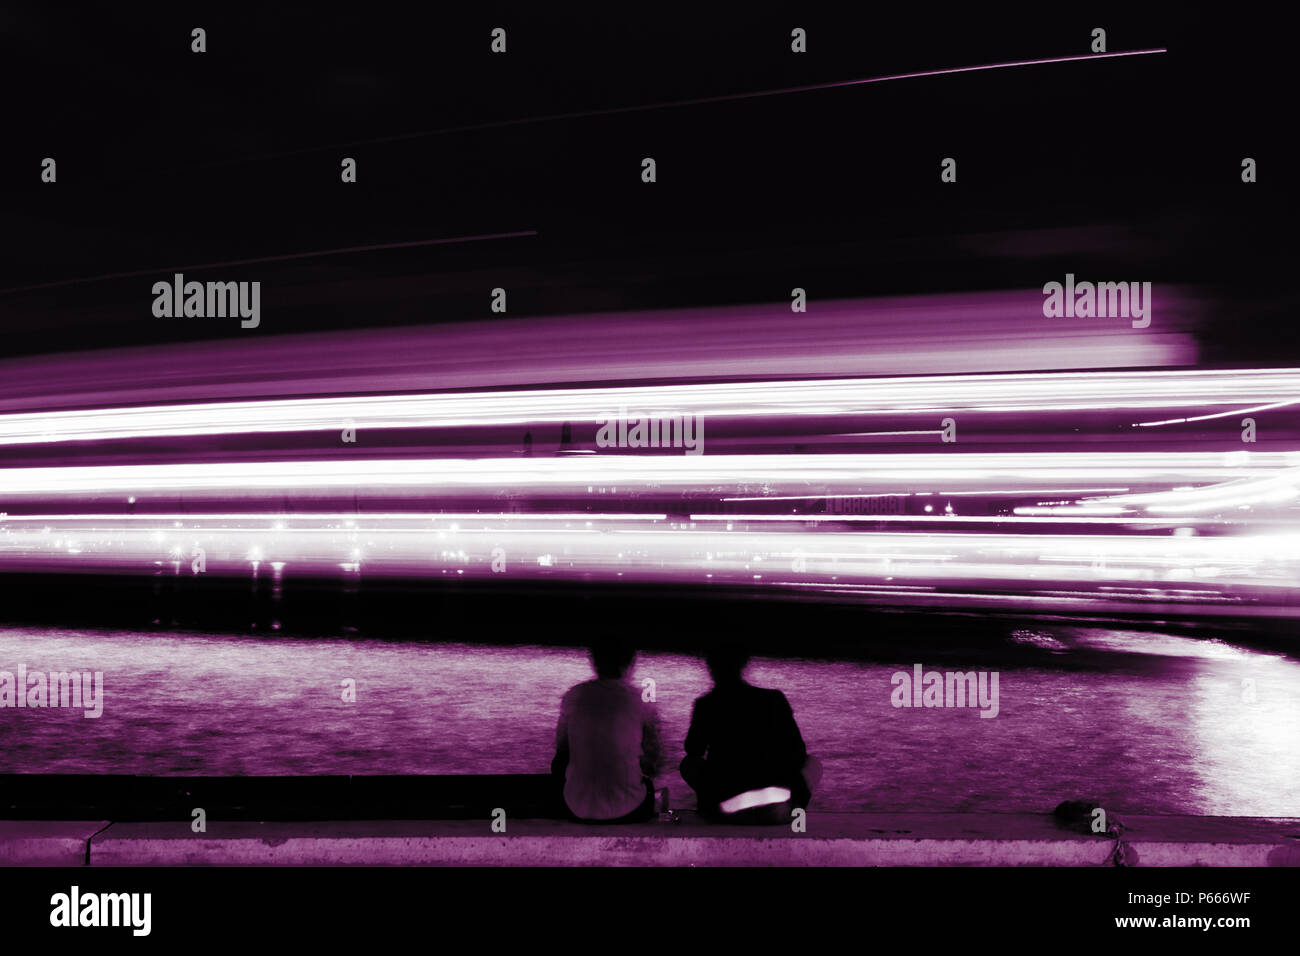 Tail lights of a ship at night with people - Stock Image